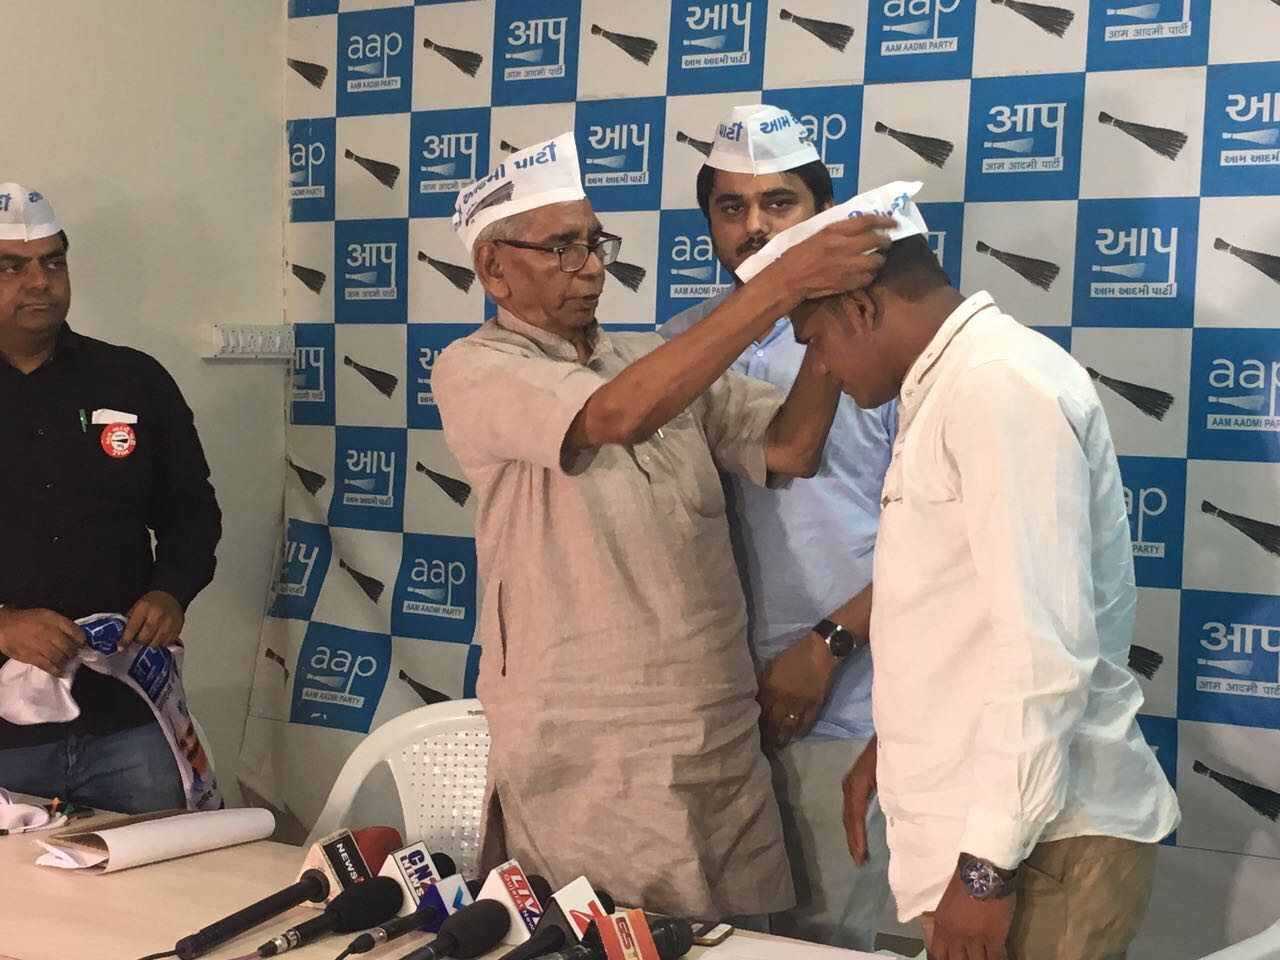 Dalit Leader Rakesh Maheria Joins AAP, Will Contest Gujarat Assembly Elections